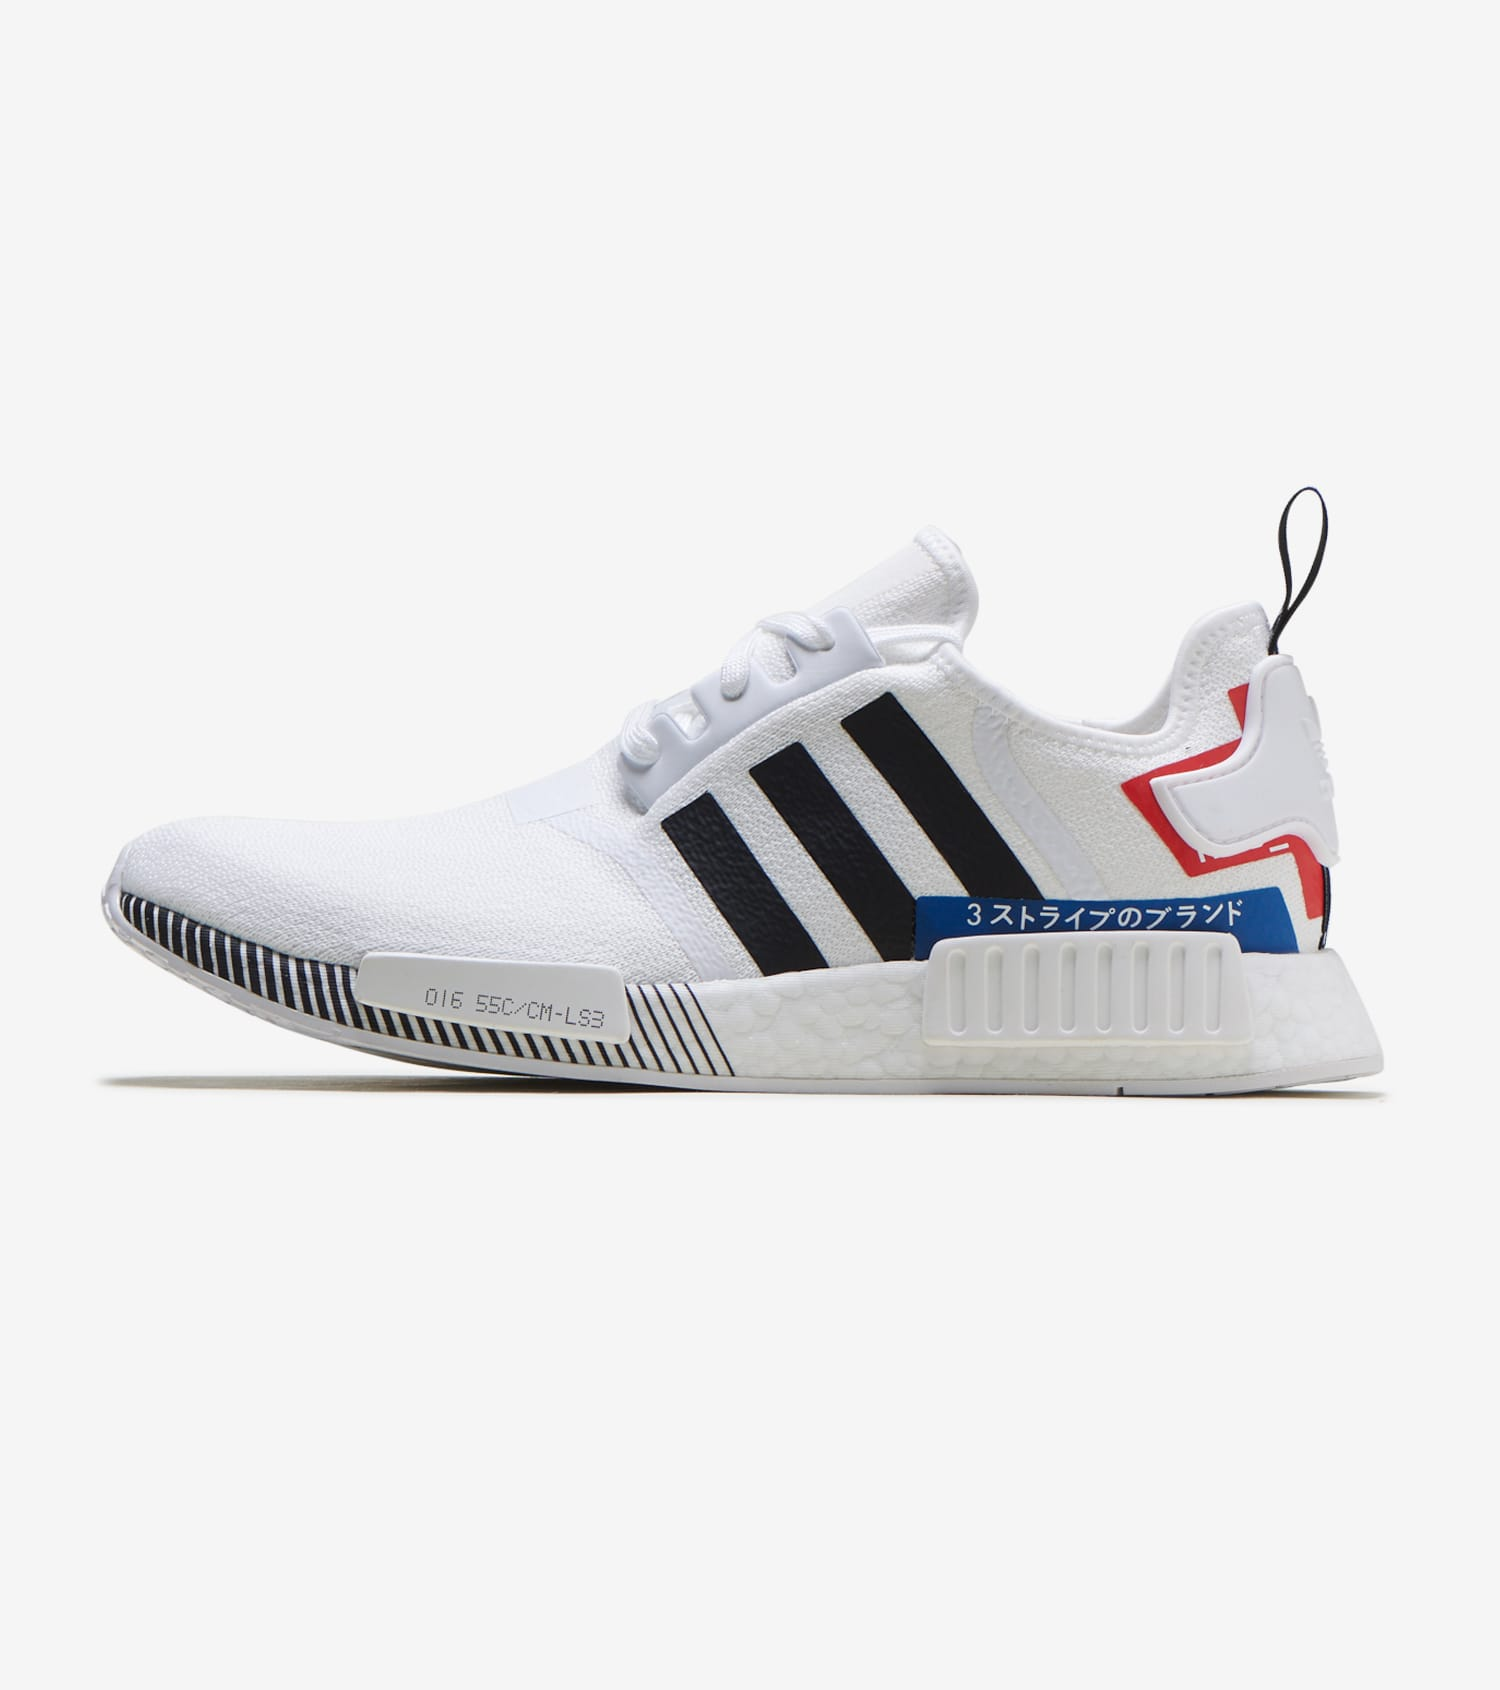 NMD_R1 'Colorblock Bianche Nere' adidas BD7741